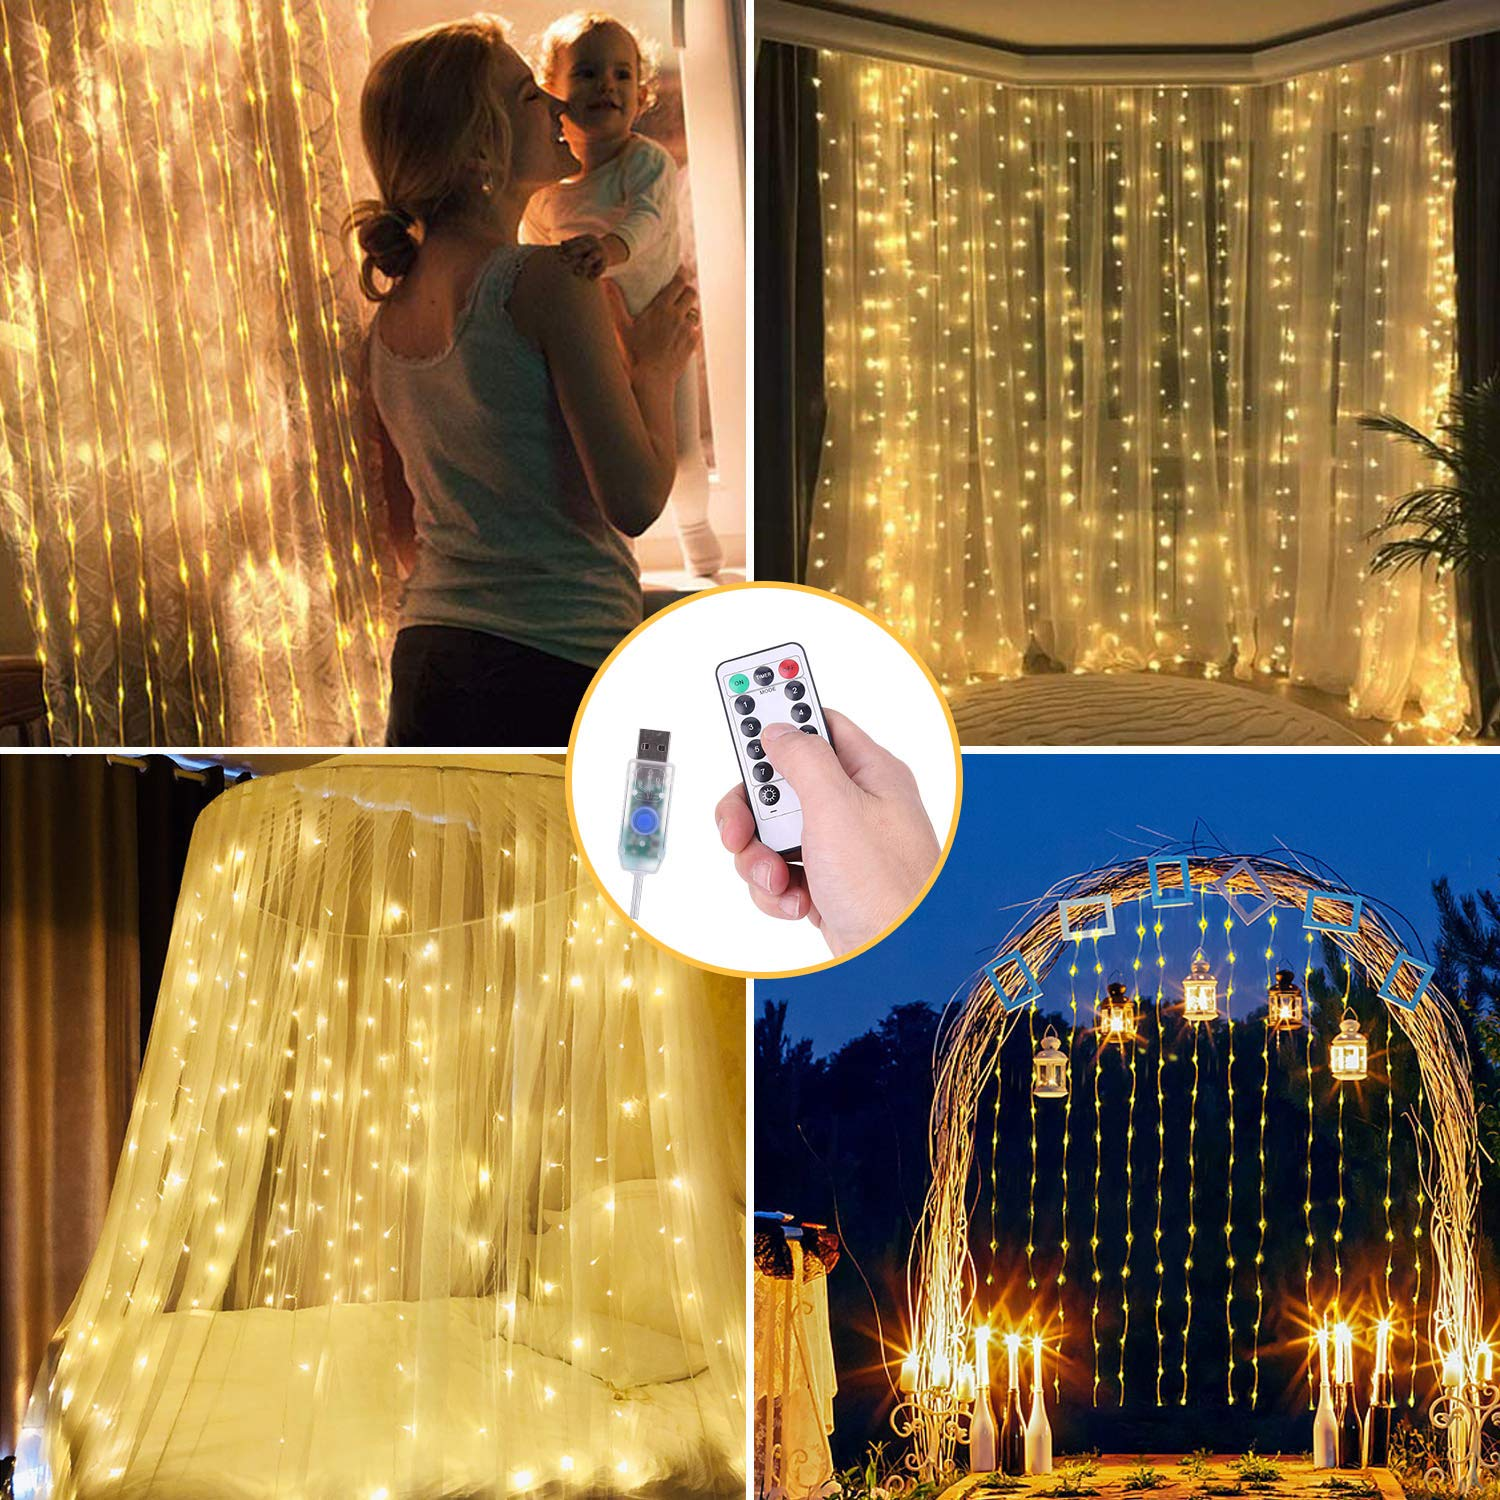 Curtain Lights 300 LED Curtain String Lights With Remote Control And Timer USB Powered For Christmas Wedding Window Indoor Decor